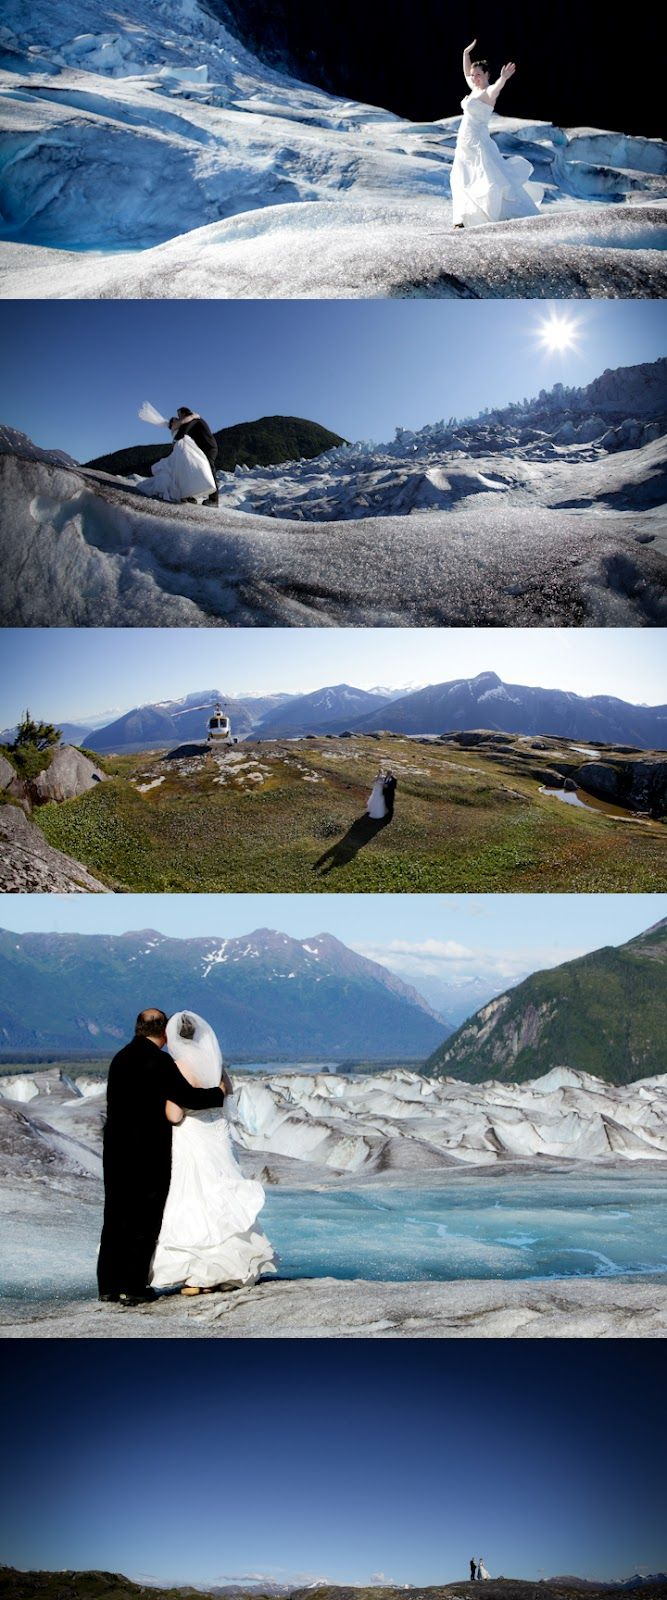 Juneau, Alaska, Wedding: Kathleen + Jeremy - Juneau Alaska Wedding Photography | #wedding #Alaska #Travel